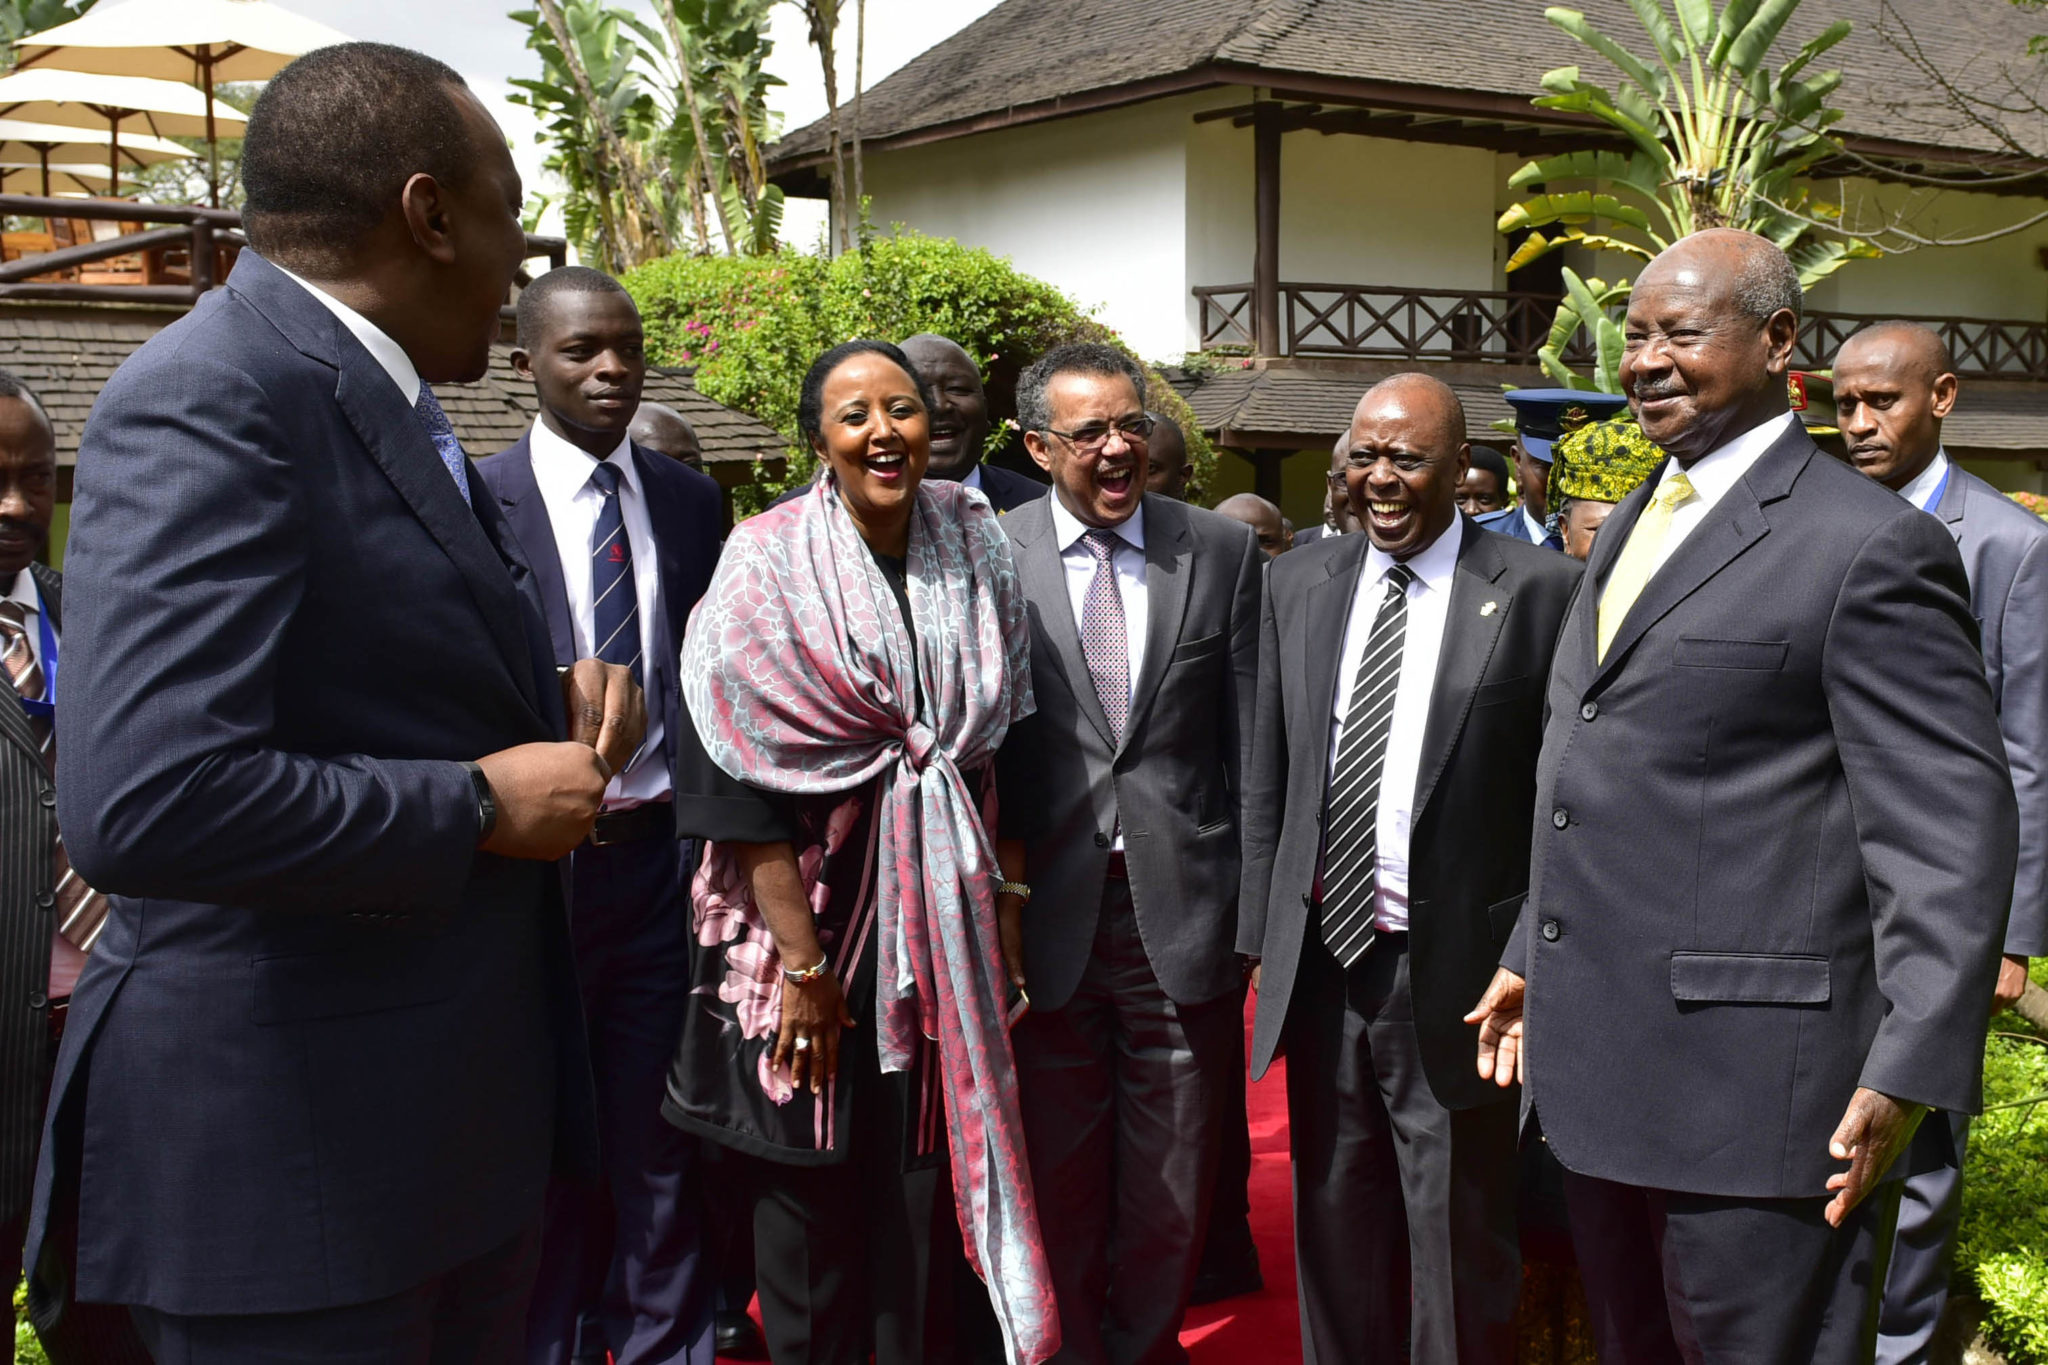 The President Yoweri Kaguta Museveni (RIGHT) interacting with the Kenyan President Uhuru Kenyatta (LEFT) and his delegation shortly after  their meeting at Safari Park Hotel in Nairobi on 29th August 2016.This was after the closing ceremony of the Tokyo International Conference on African Developement in Nairobi Kenya.